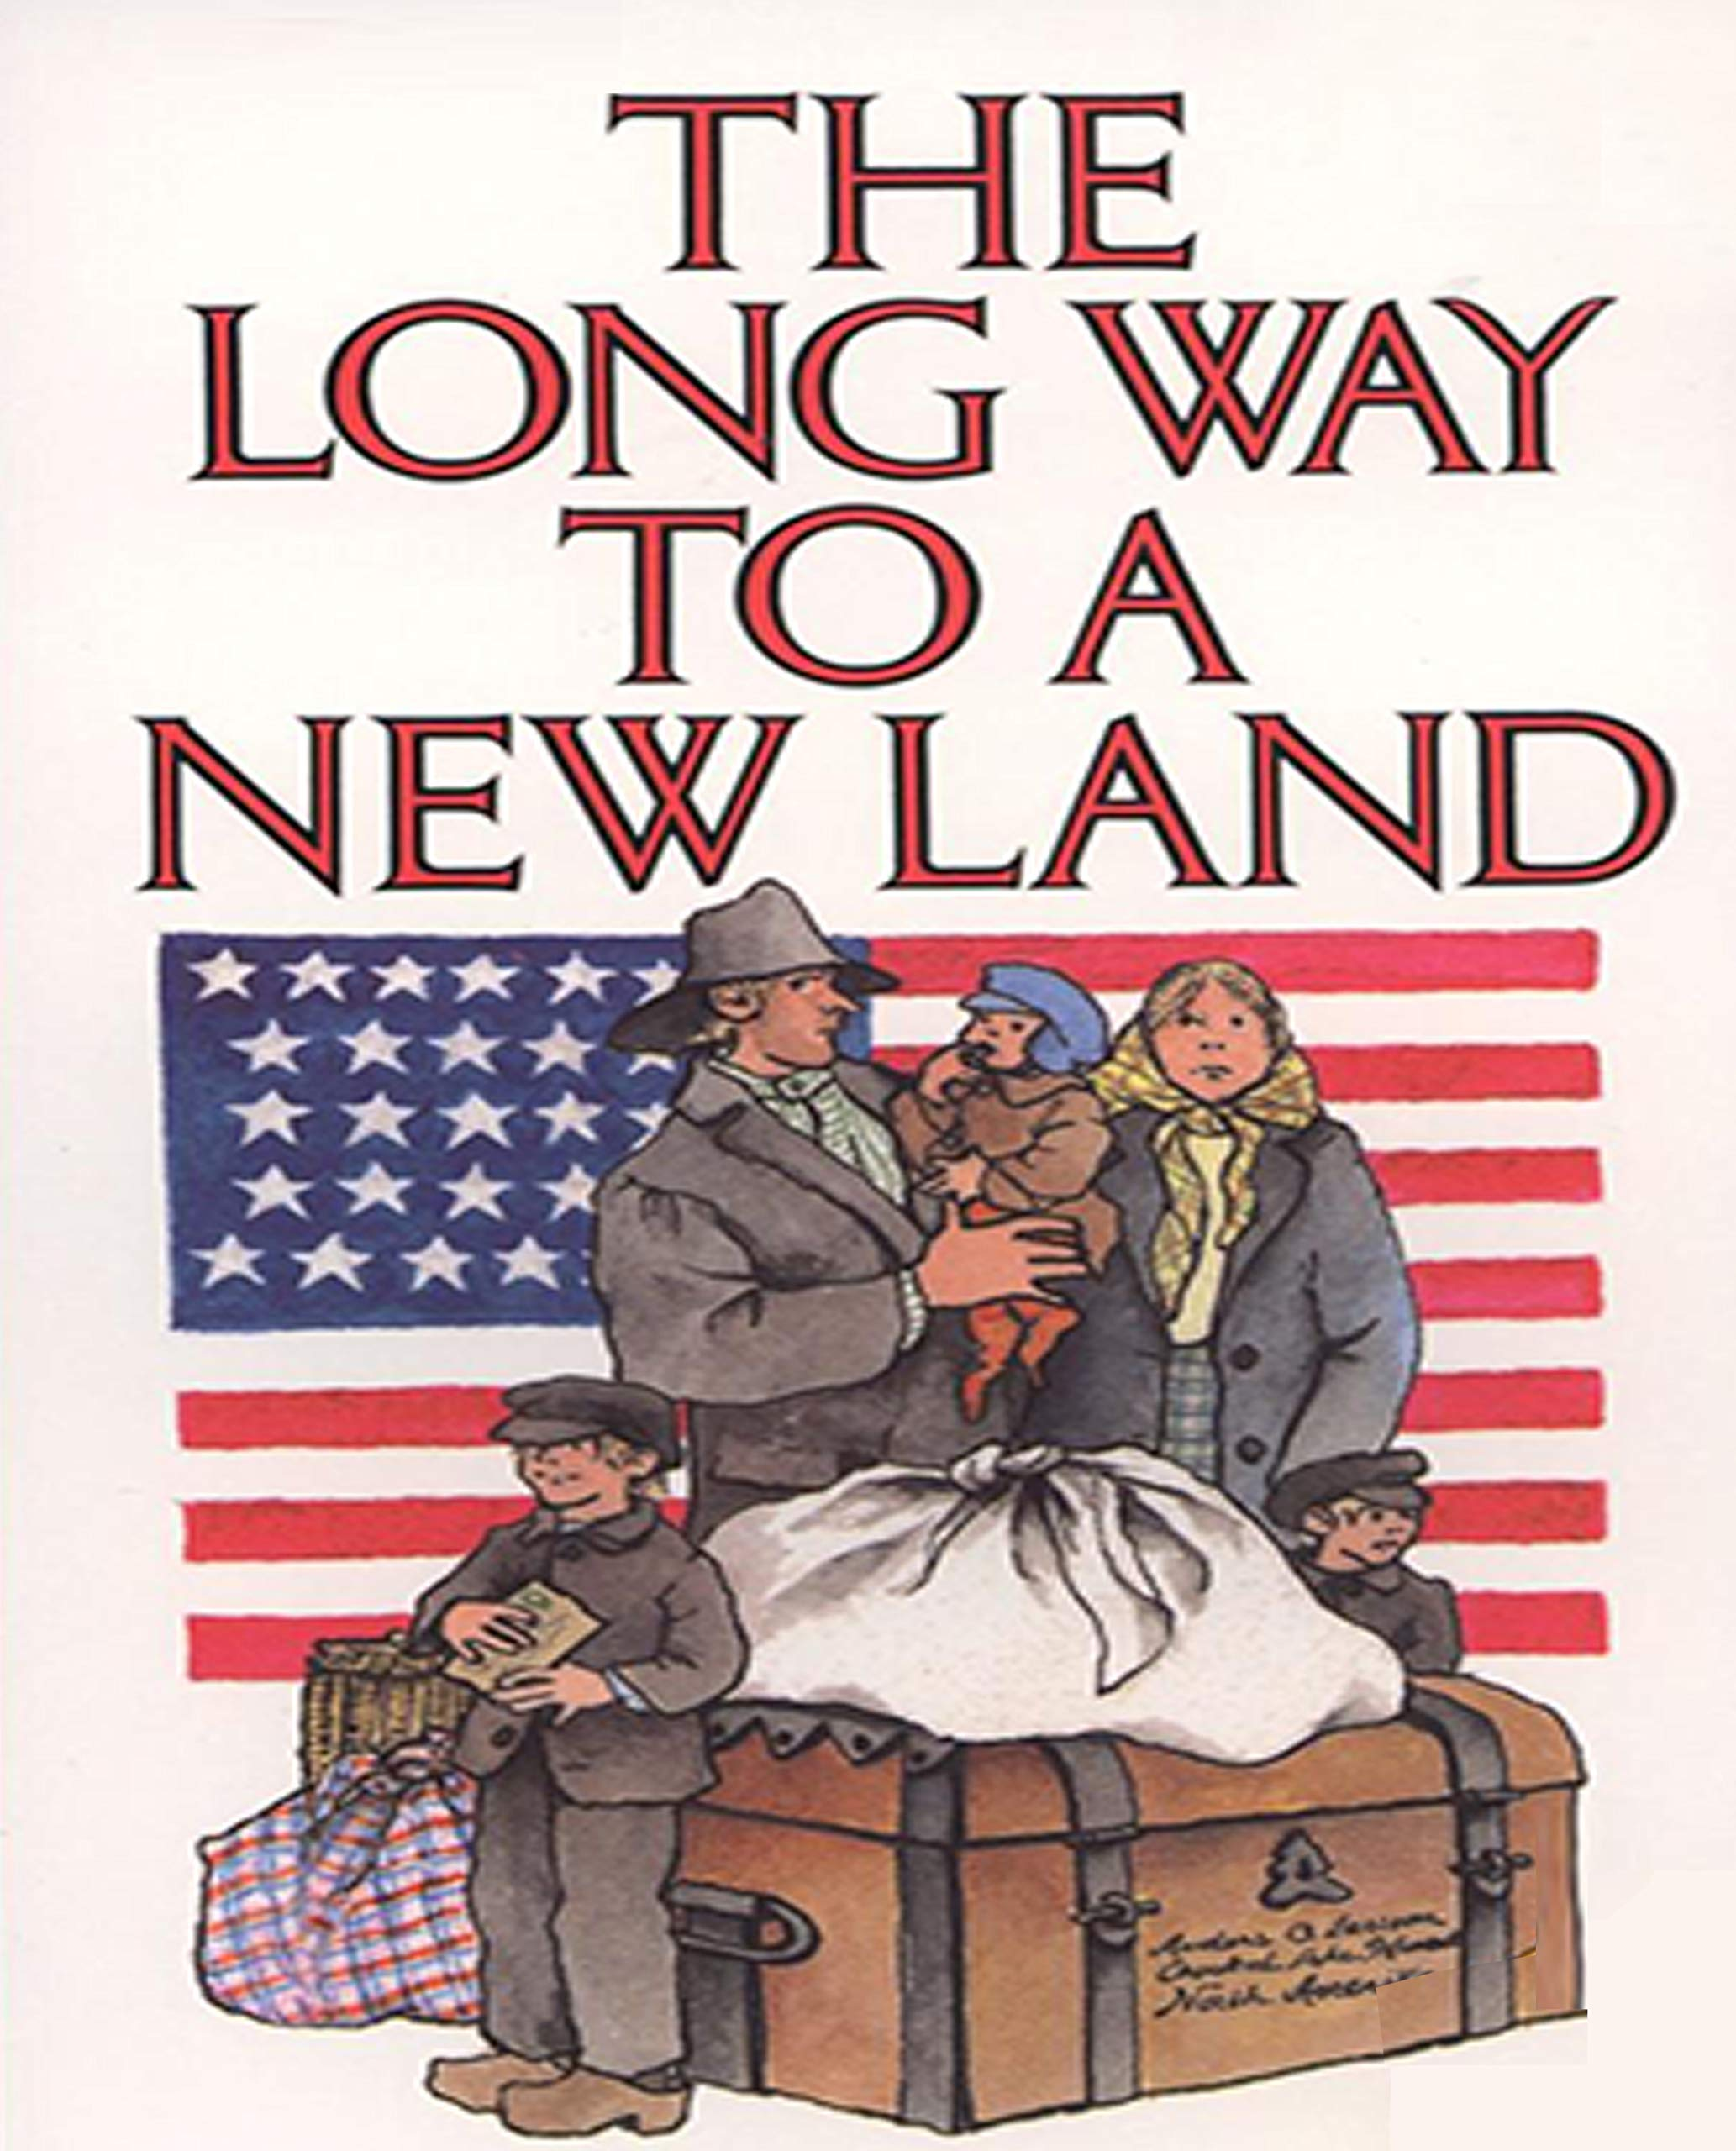 The long way to a new land: Children's Books